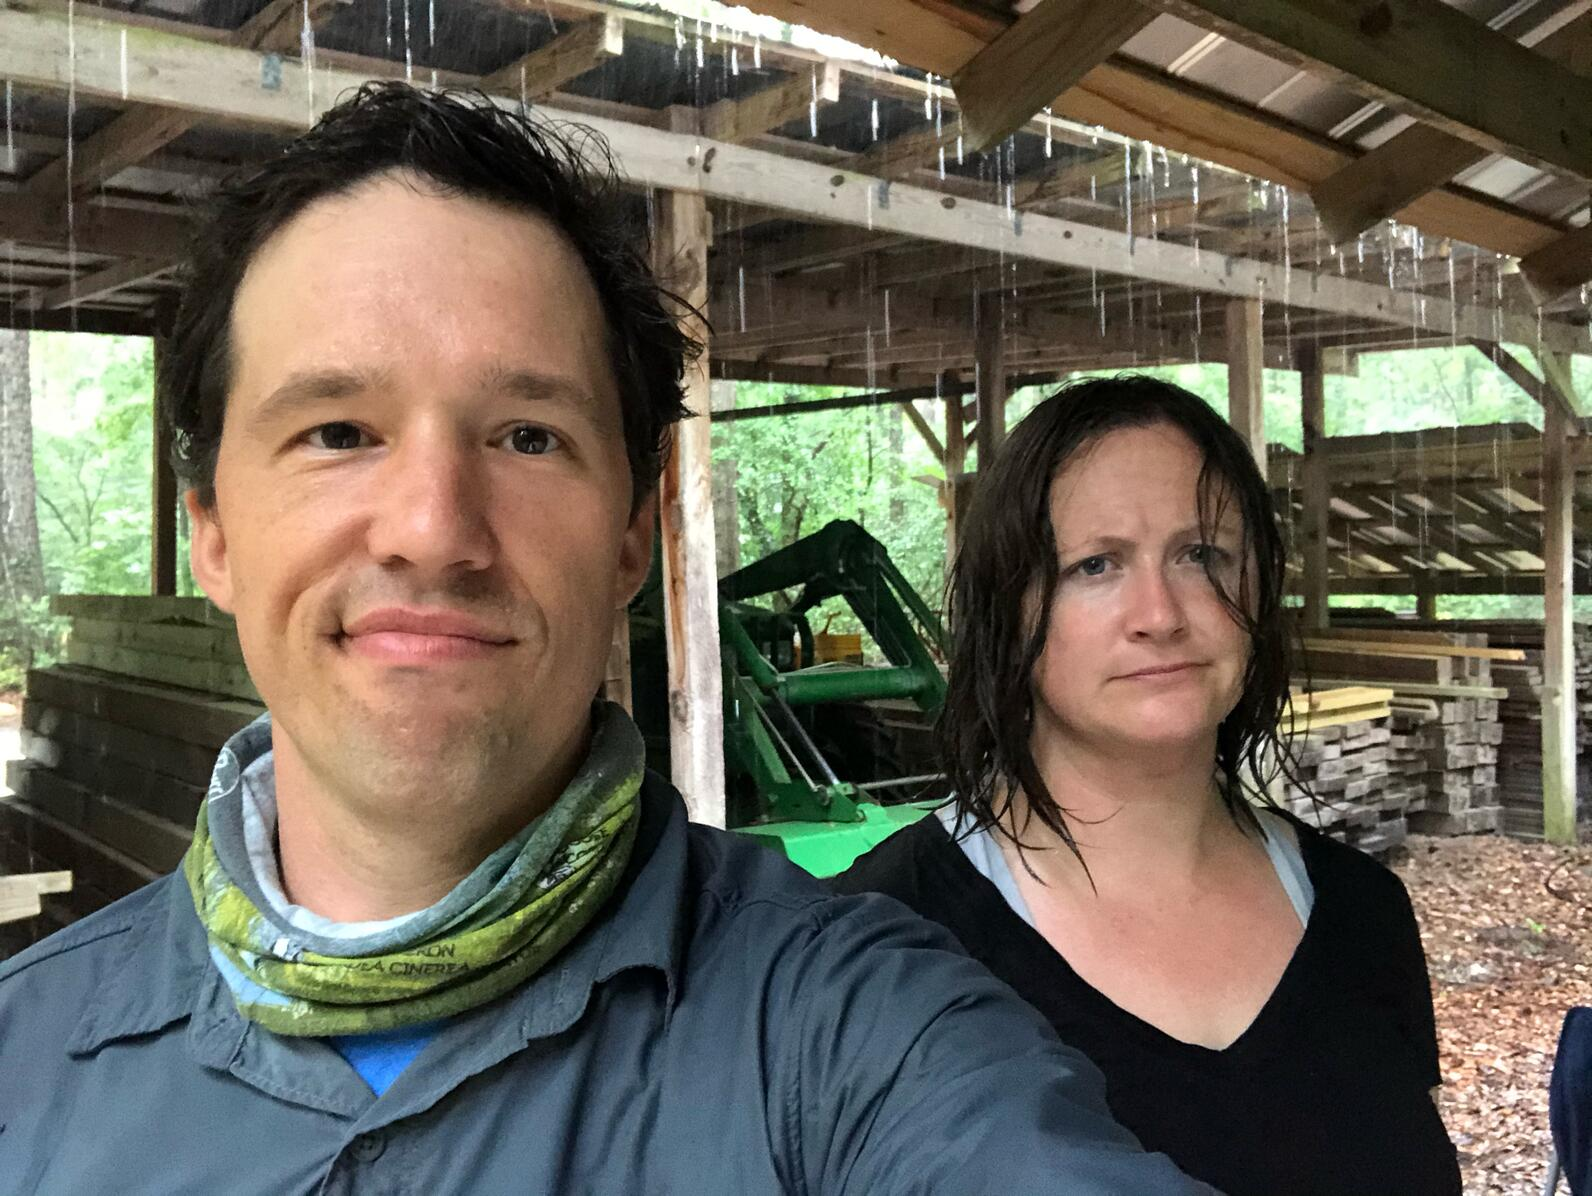 Matt and Jen got drenched in the rain and are not pleased.